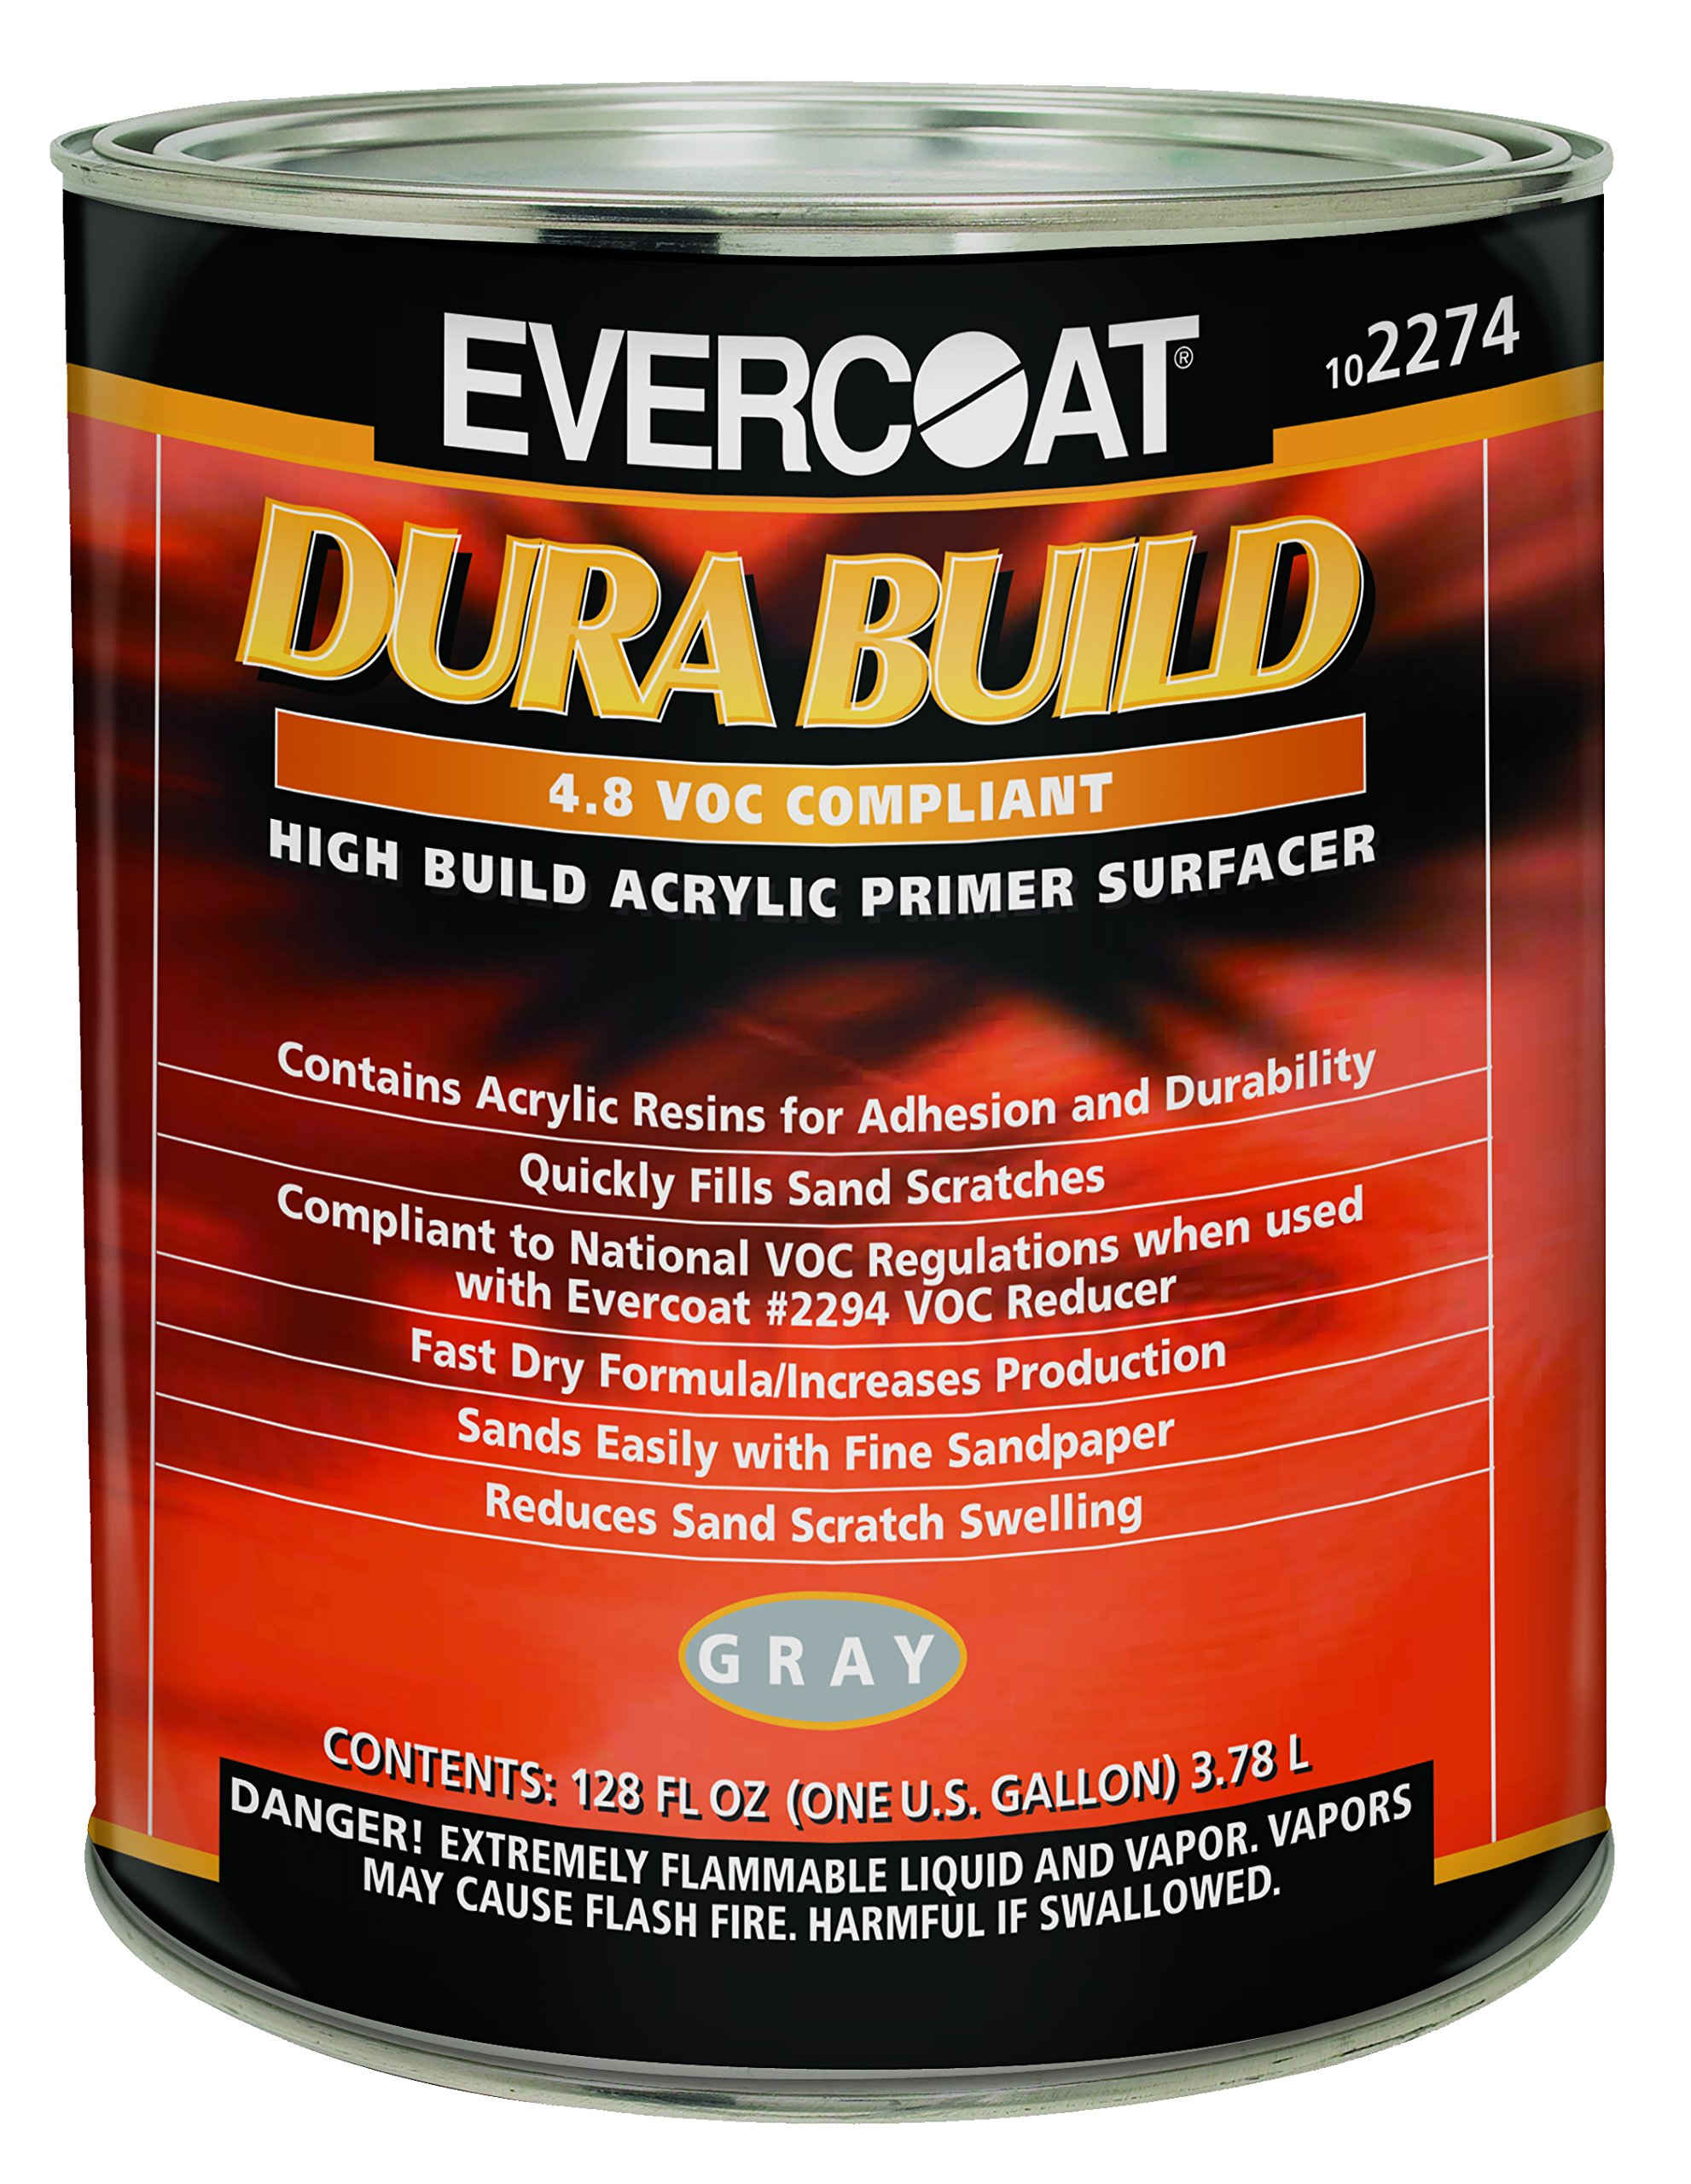 Evercoat 2274 Dura Build Acrylic Primer Surfacer - Gray - Gallon